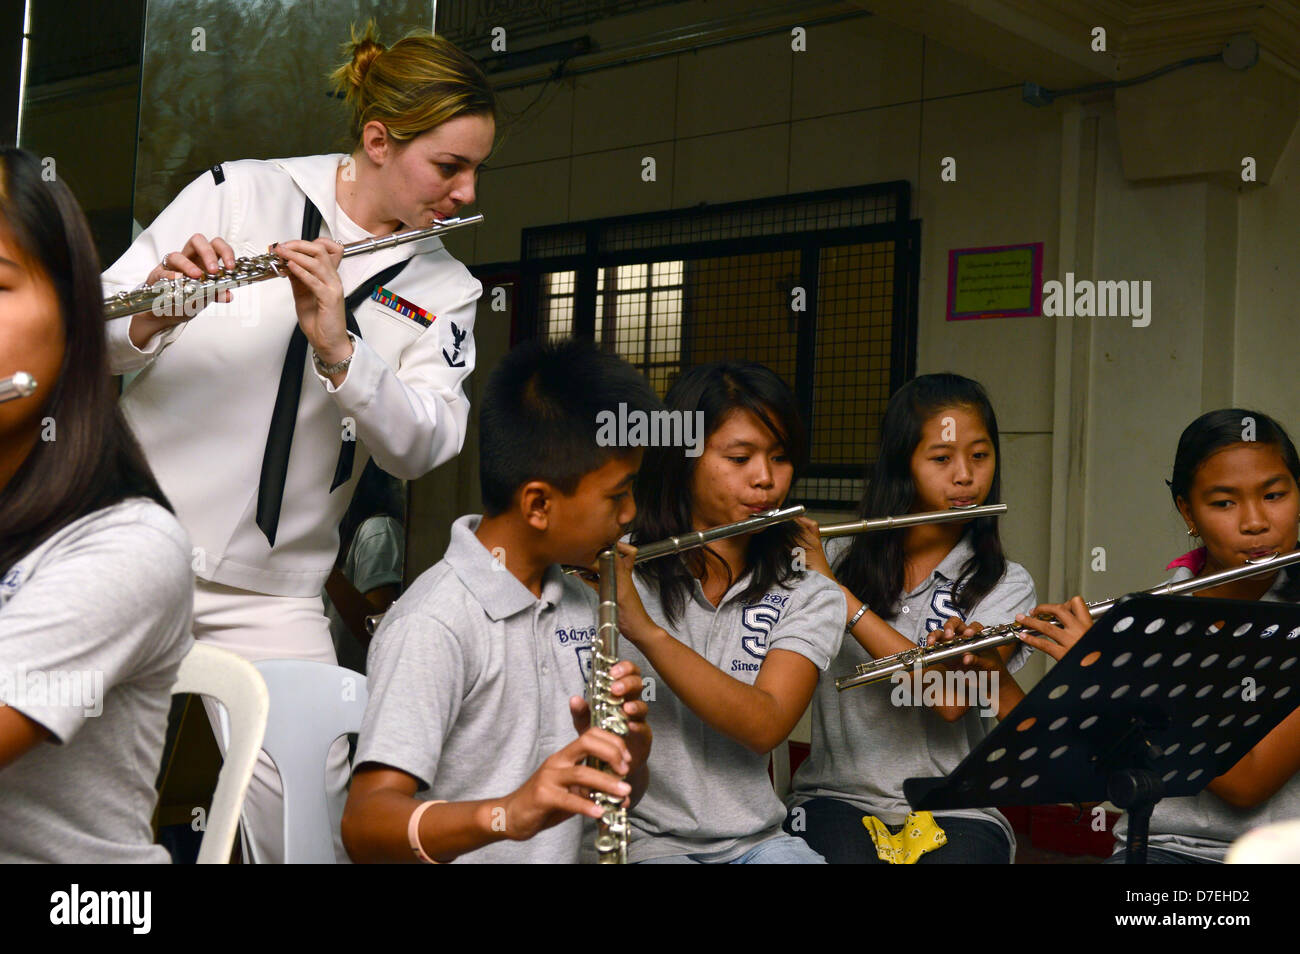 U.S. 7th Fleet Band works with music students. Stock Photo